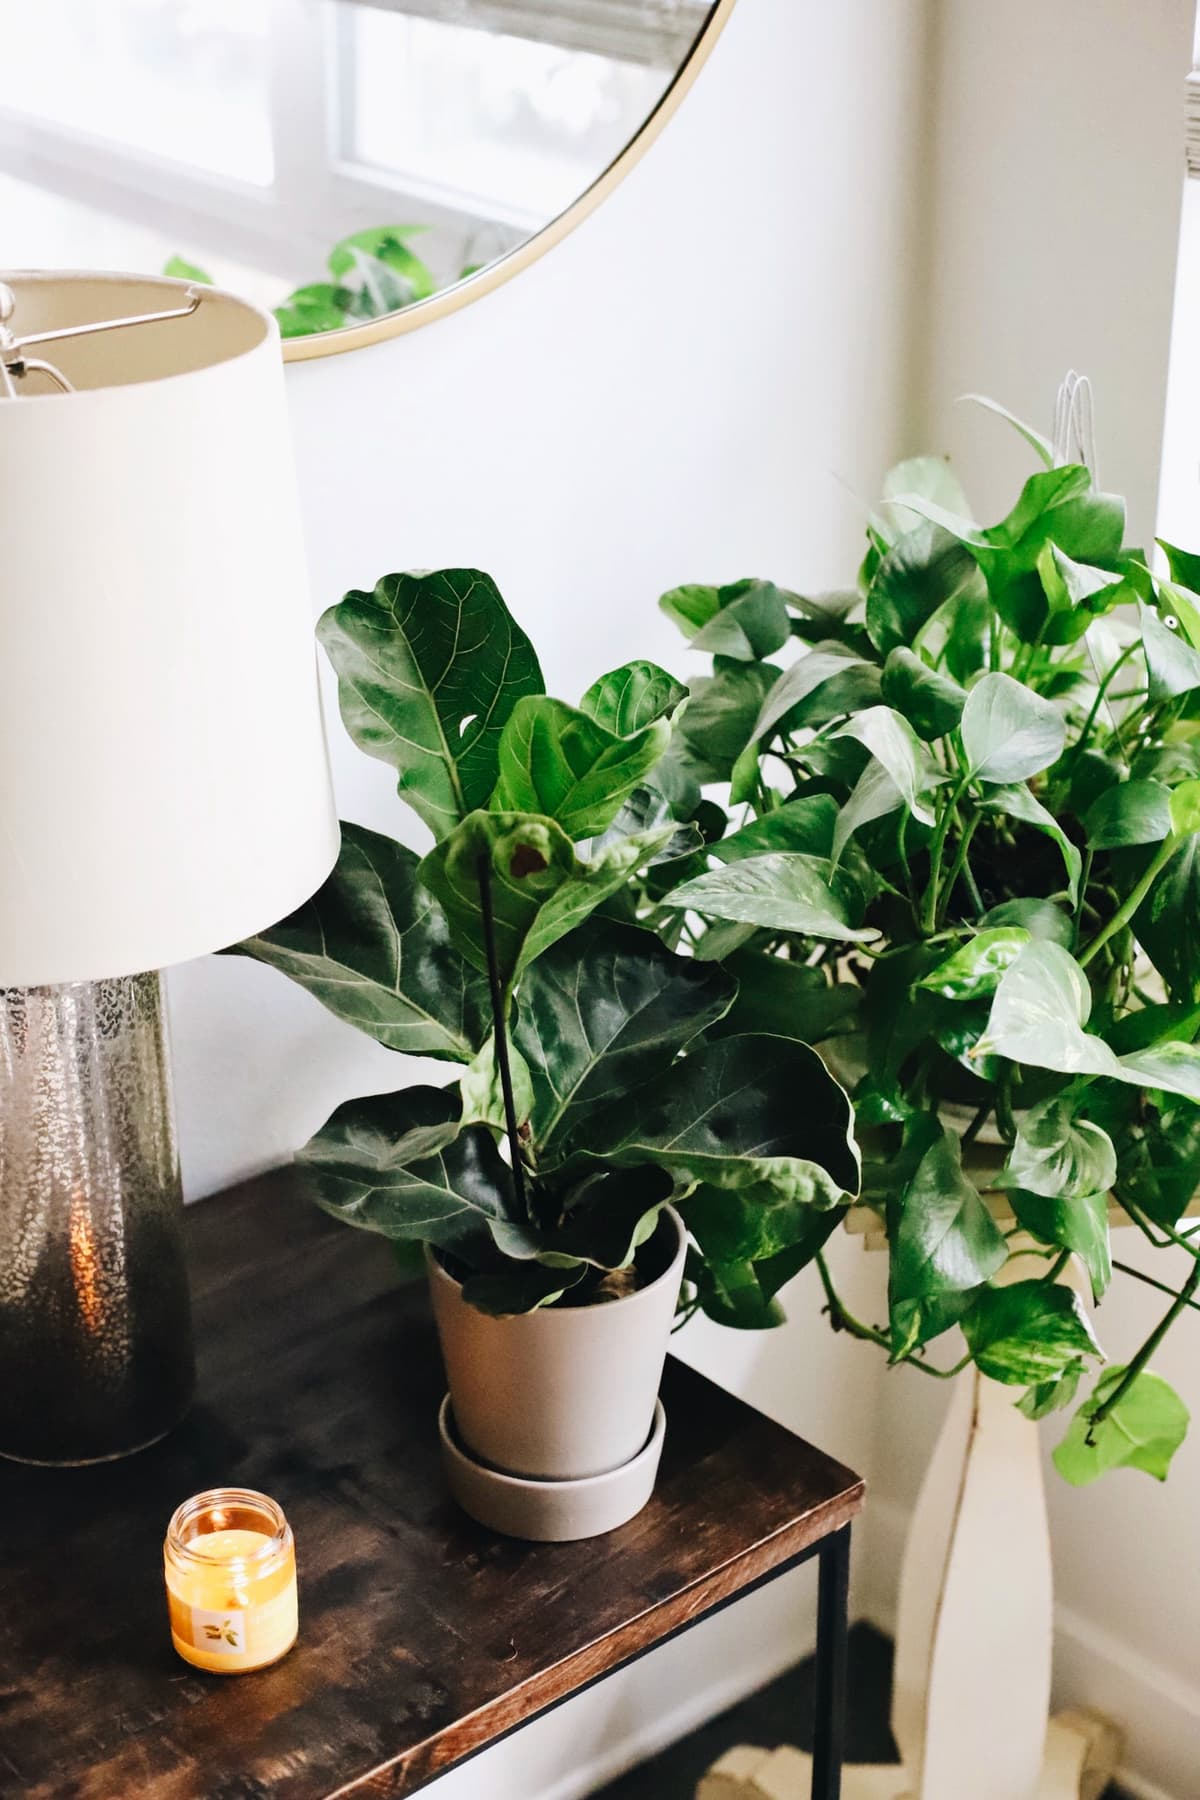 Plants sitting by a window with a brown table and lamp next to them.